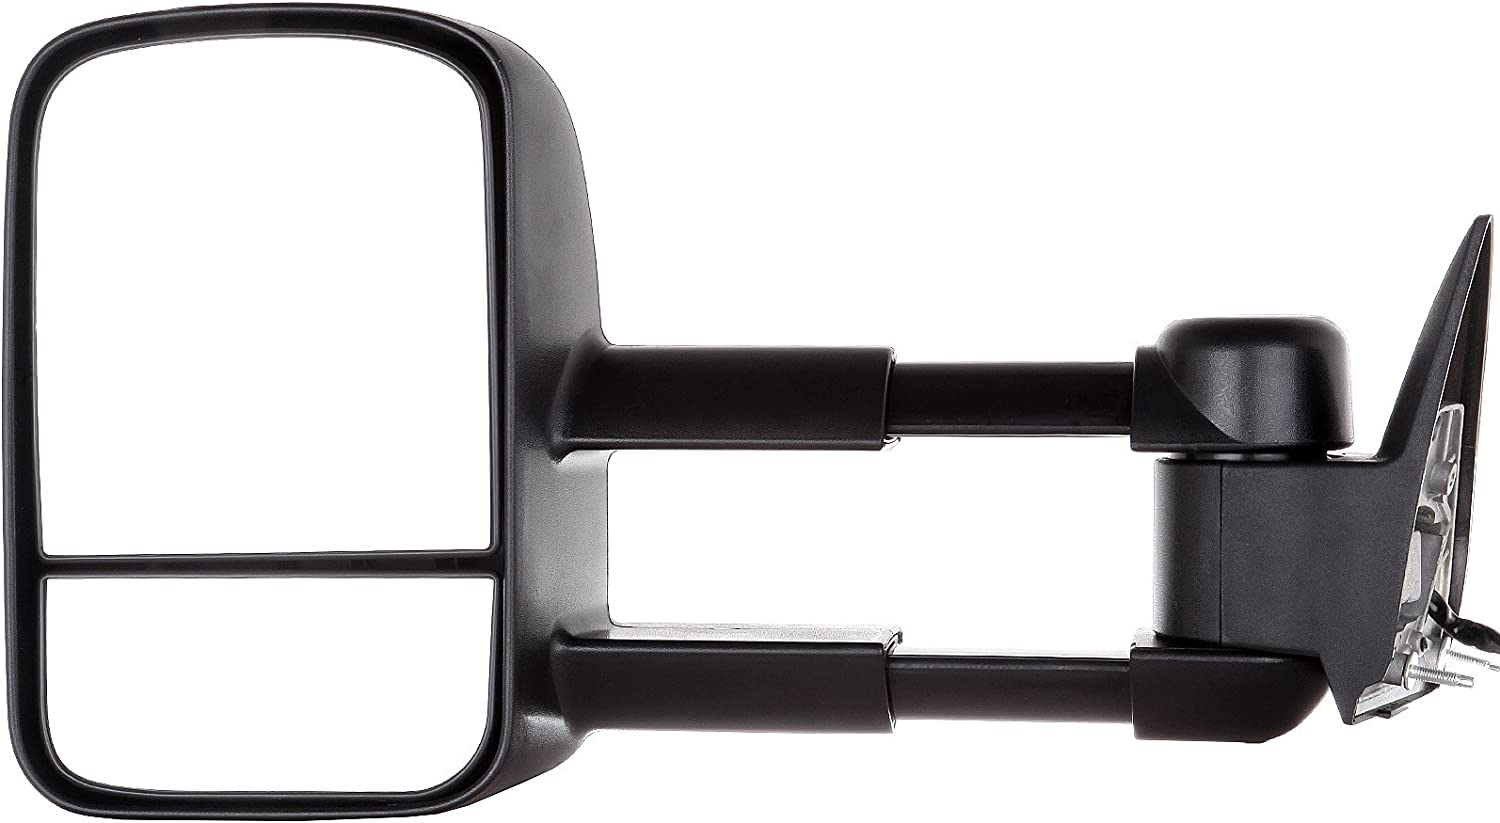 cciyu Left Right Towing Mirror Tow Mirrors Replacement Fit for 1988-2000 Chevy//GMC C//K 1500//2500//3500 1992-1999 Chevy//GMC Suburban 1500//2500 Pair Power Adjusted Black Housing